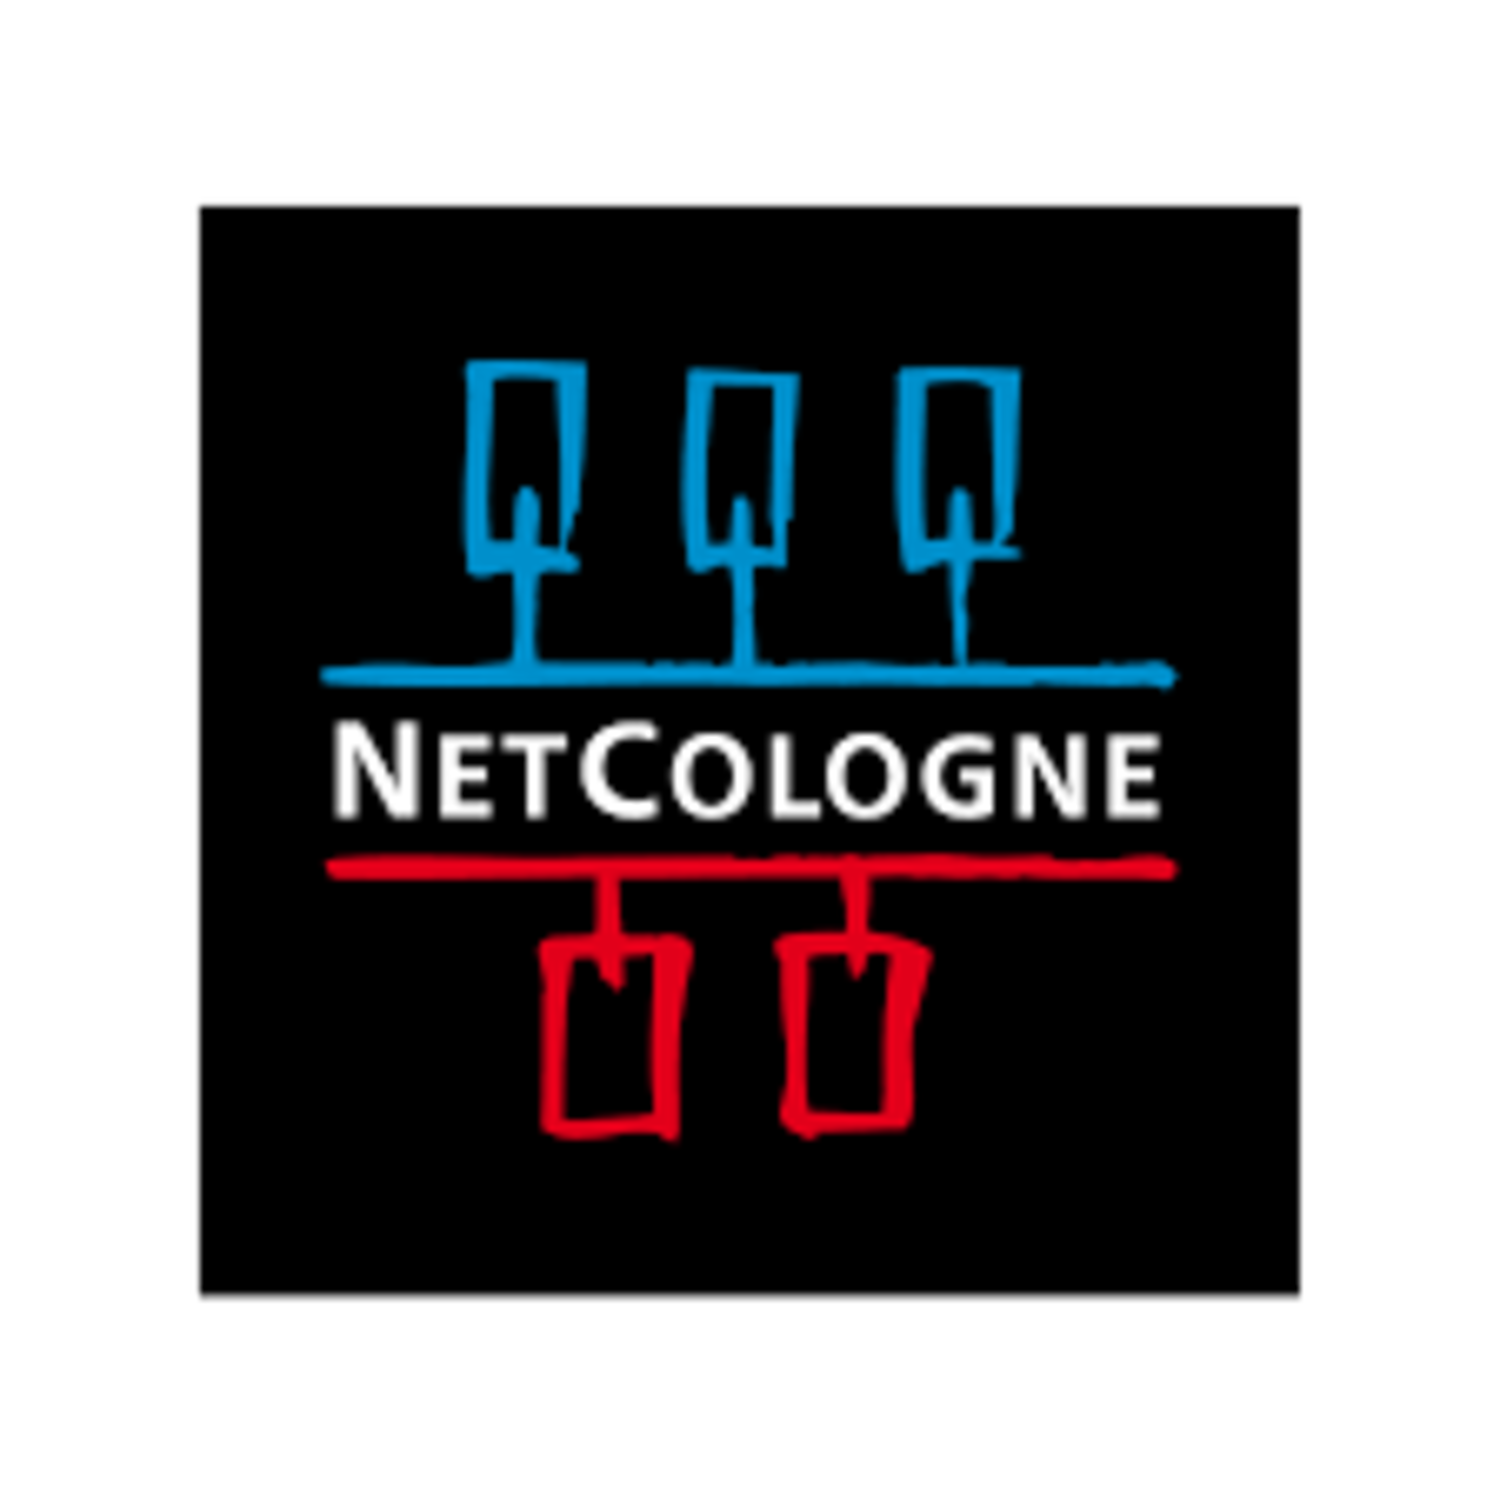 netcologne-logo.png